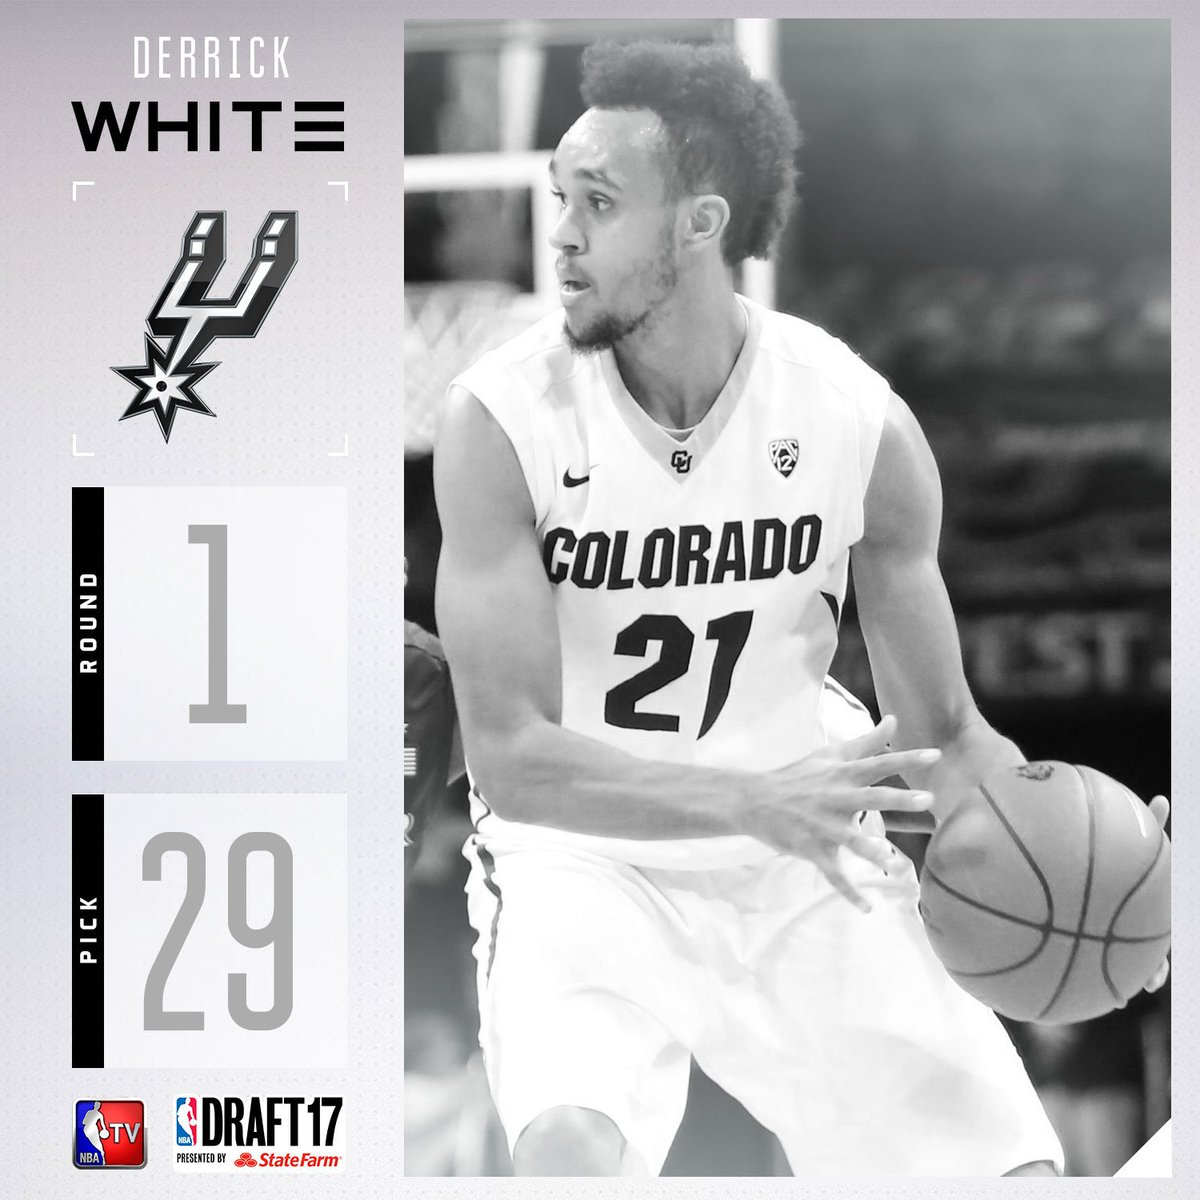 The @spurs select Derrick White with the #29 pick in the 2017 #NBADraf...